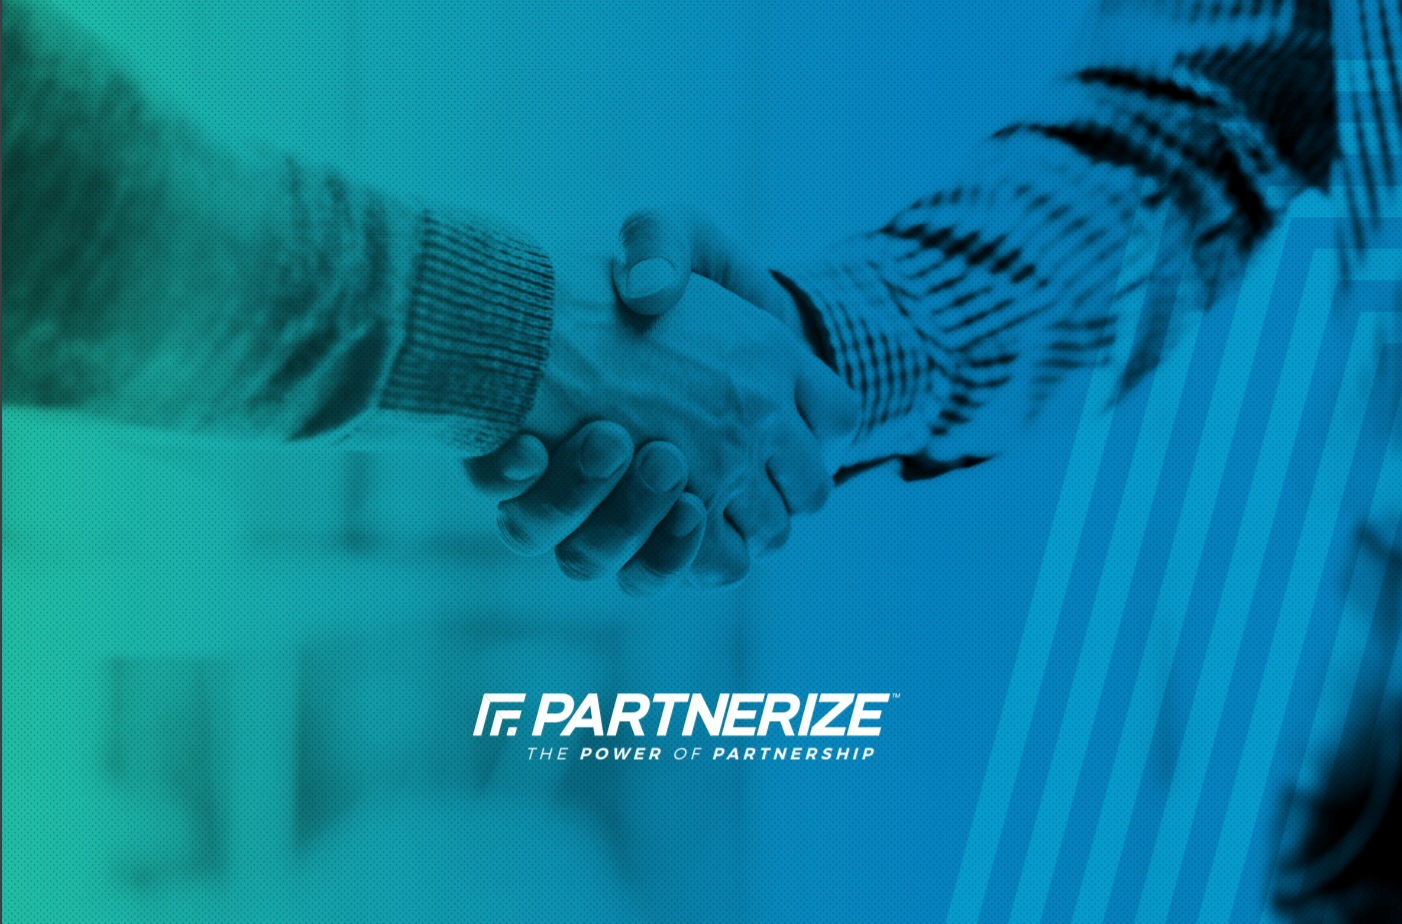 Partnerize will open a Singapore office by Q1 2019